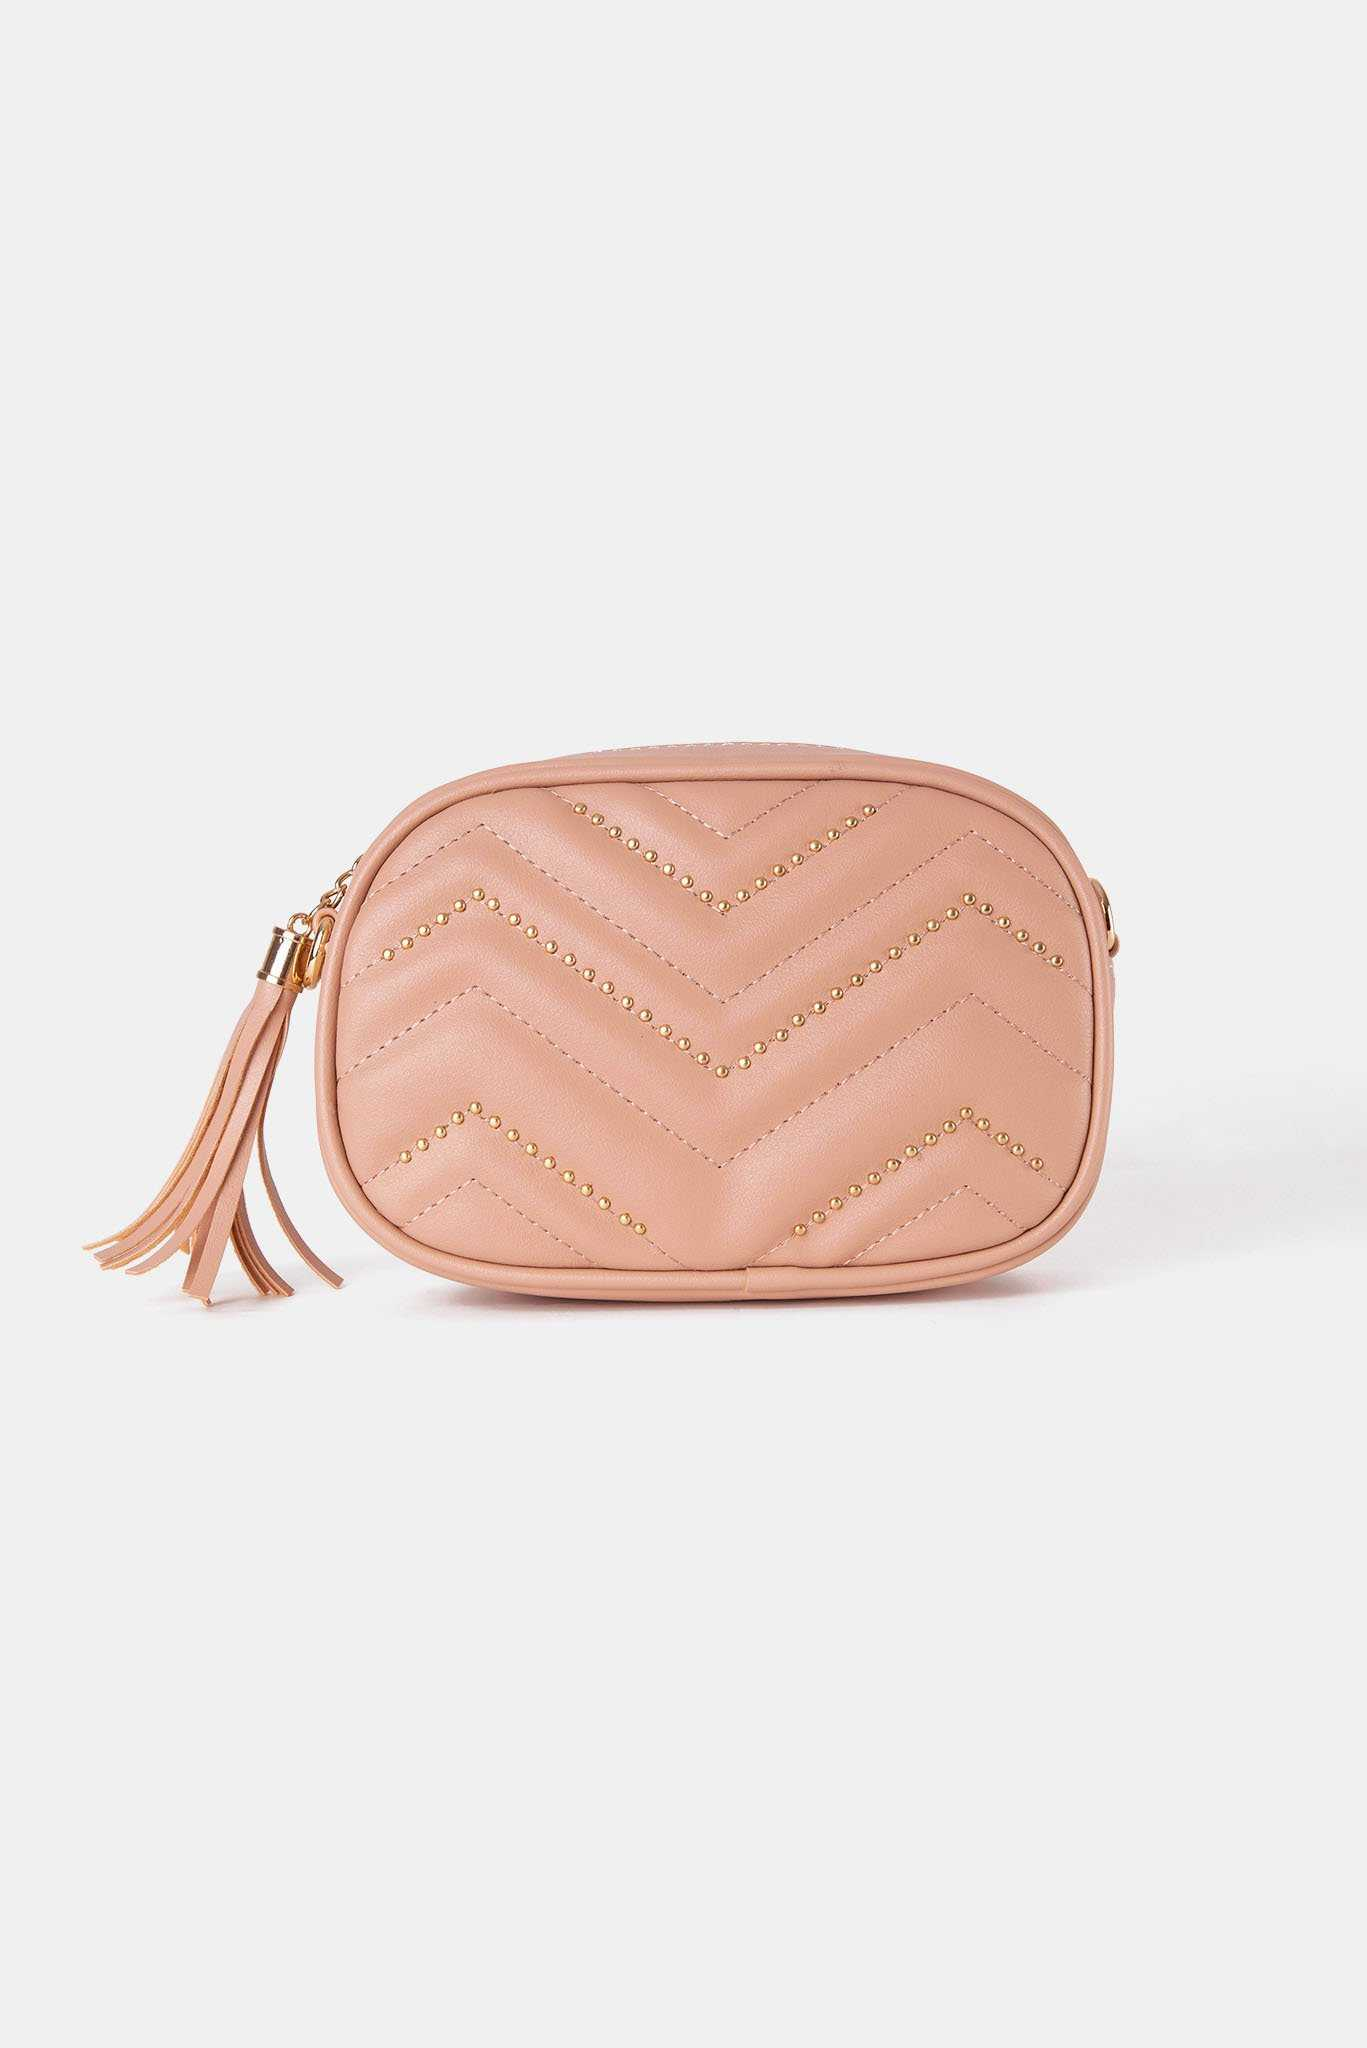 Studded Chevron Crossbody - Nude | Raw Orange